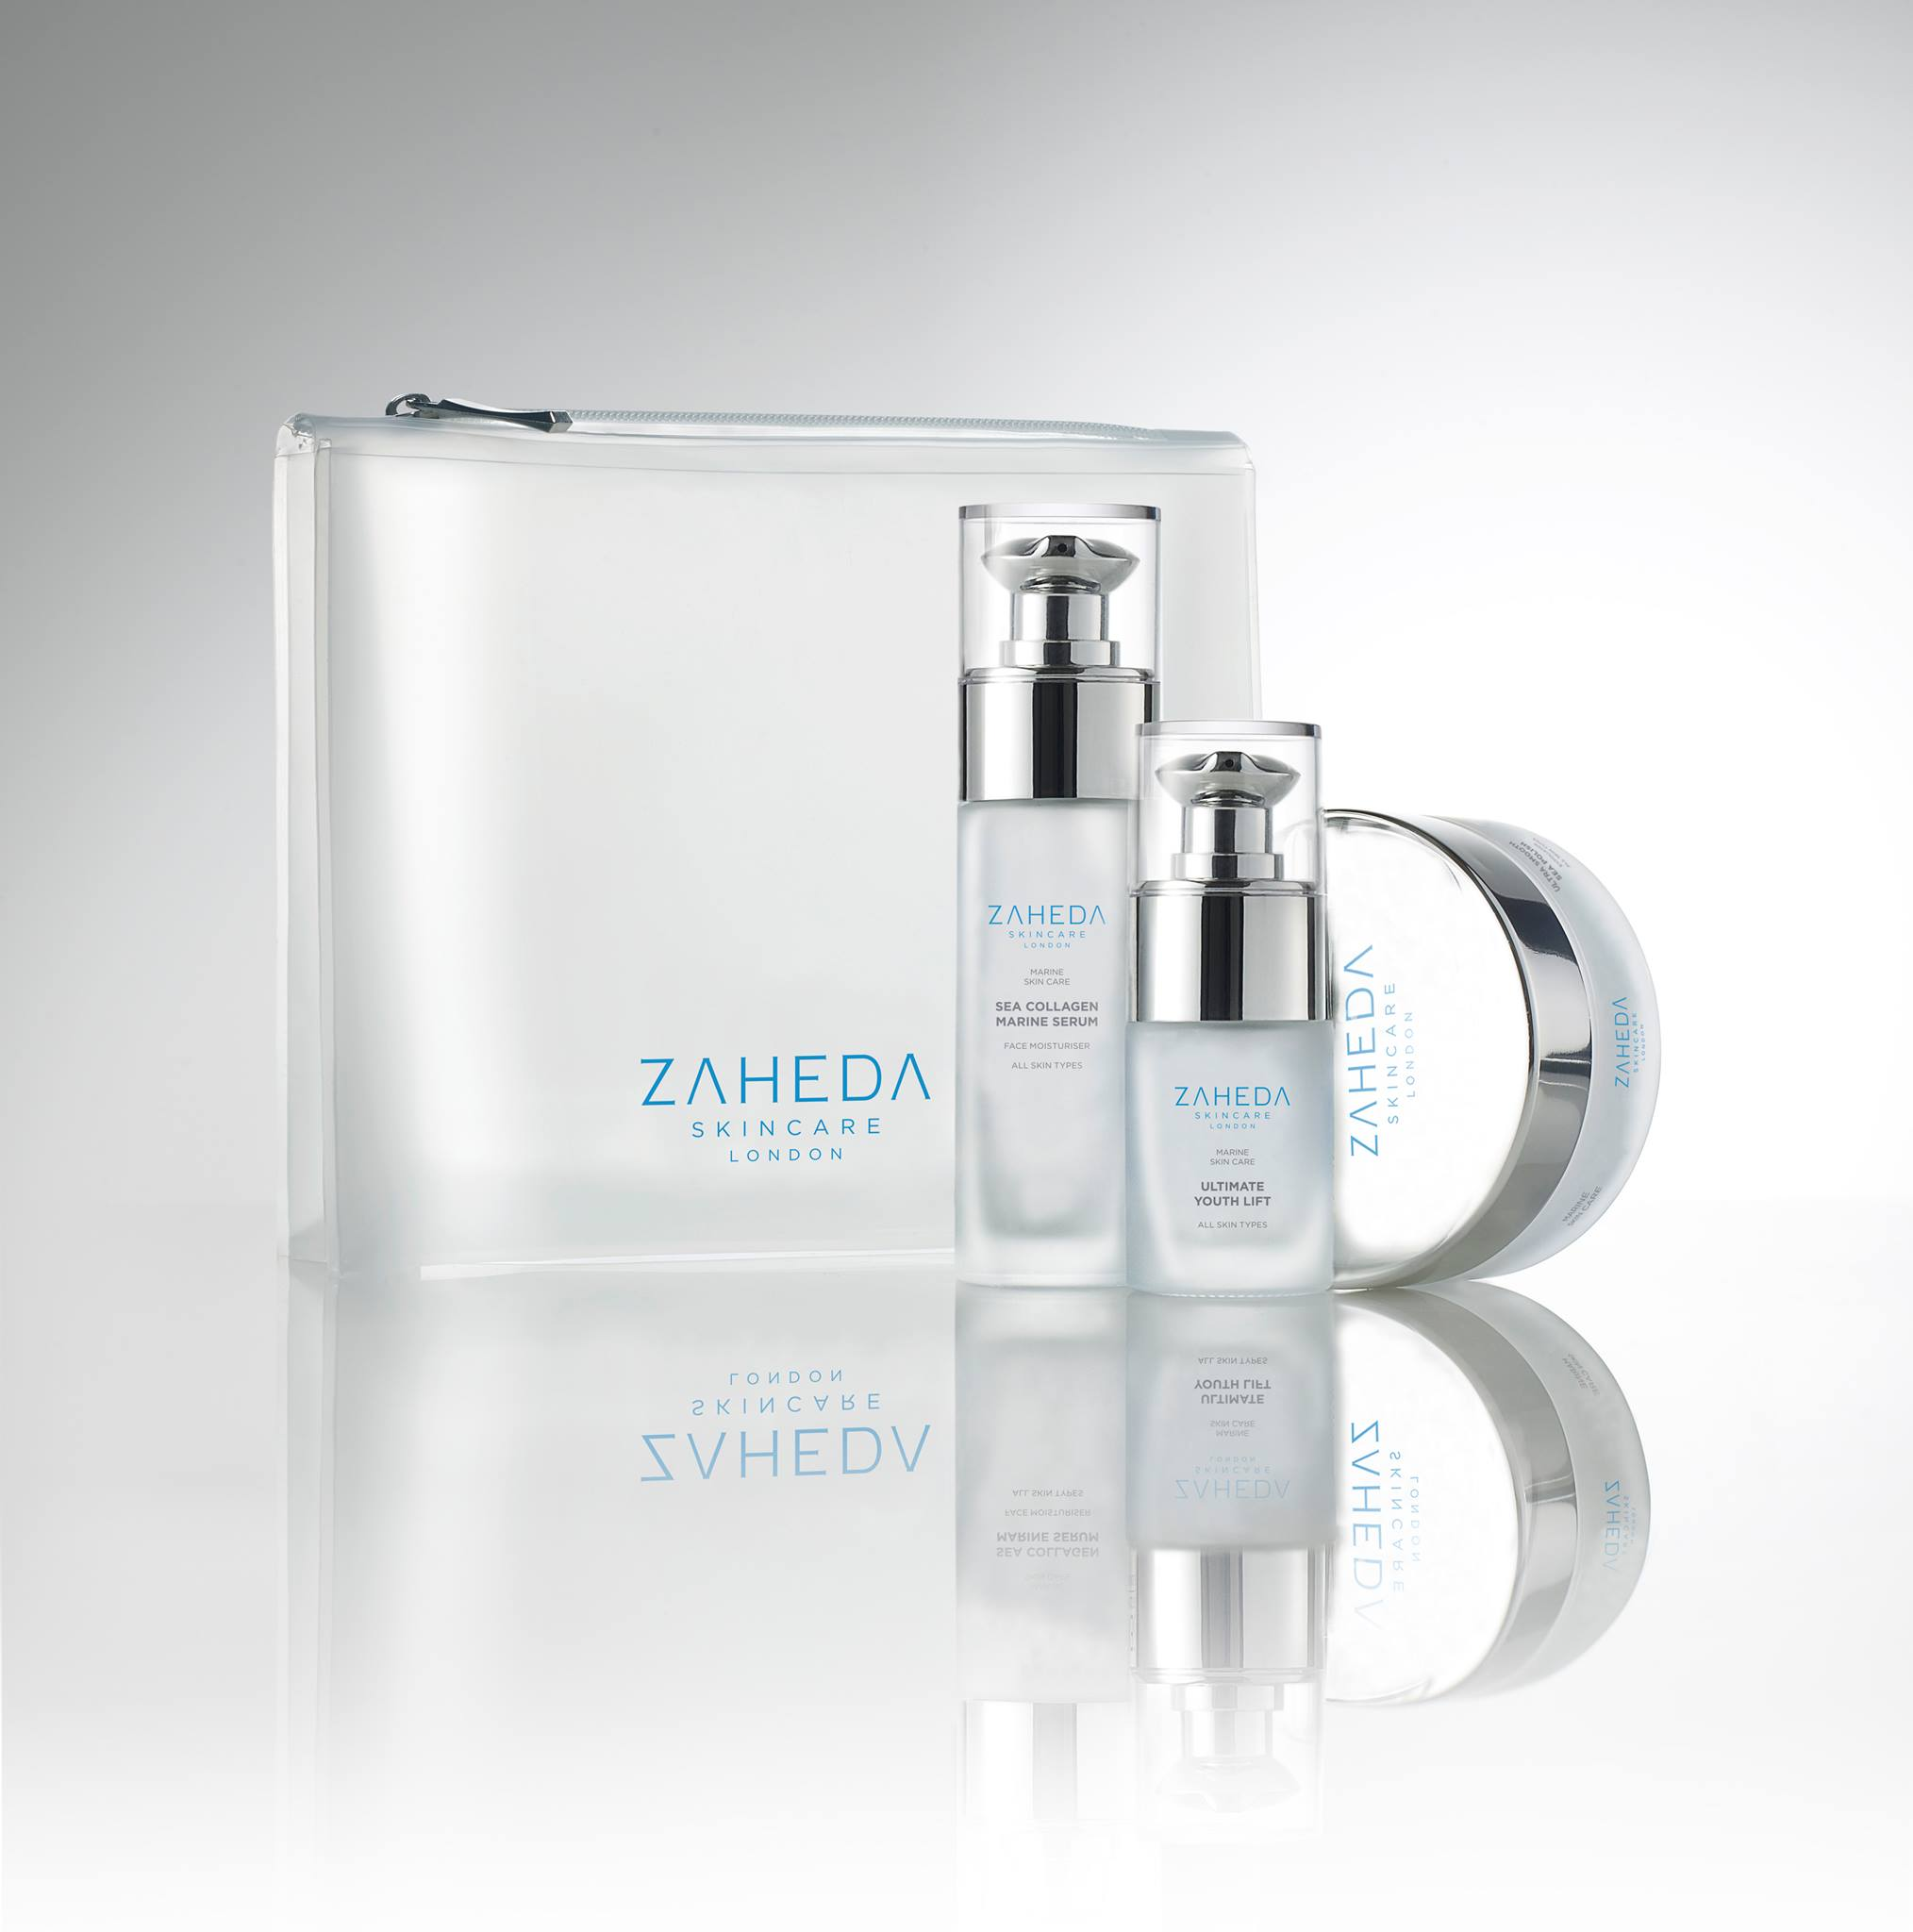 ZAHEDA Skincare London Gift Set